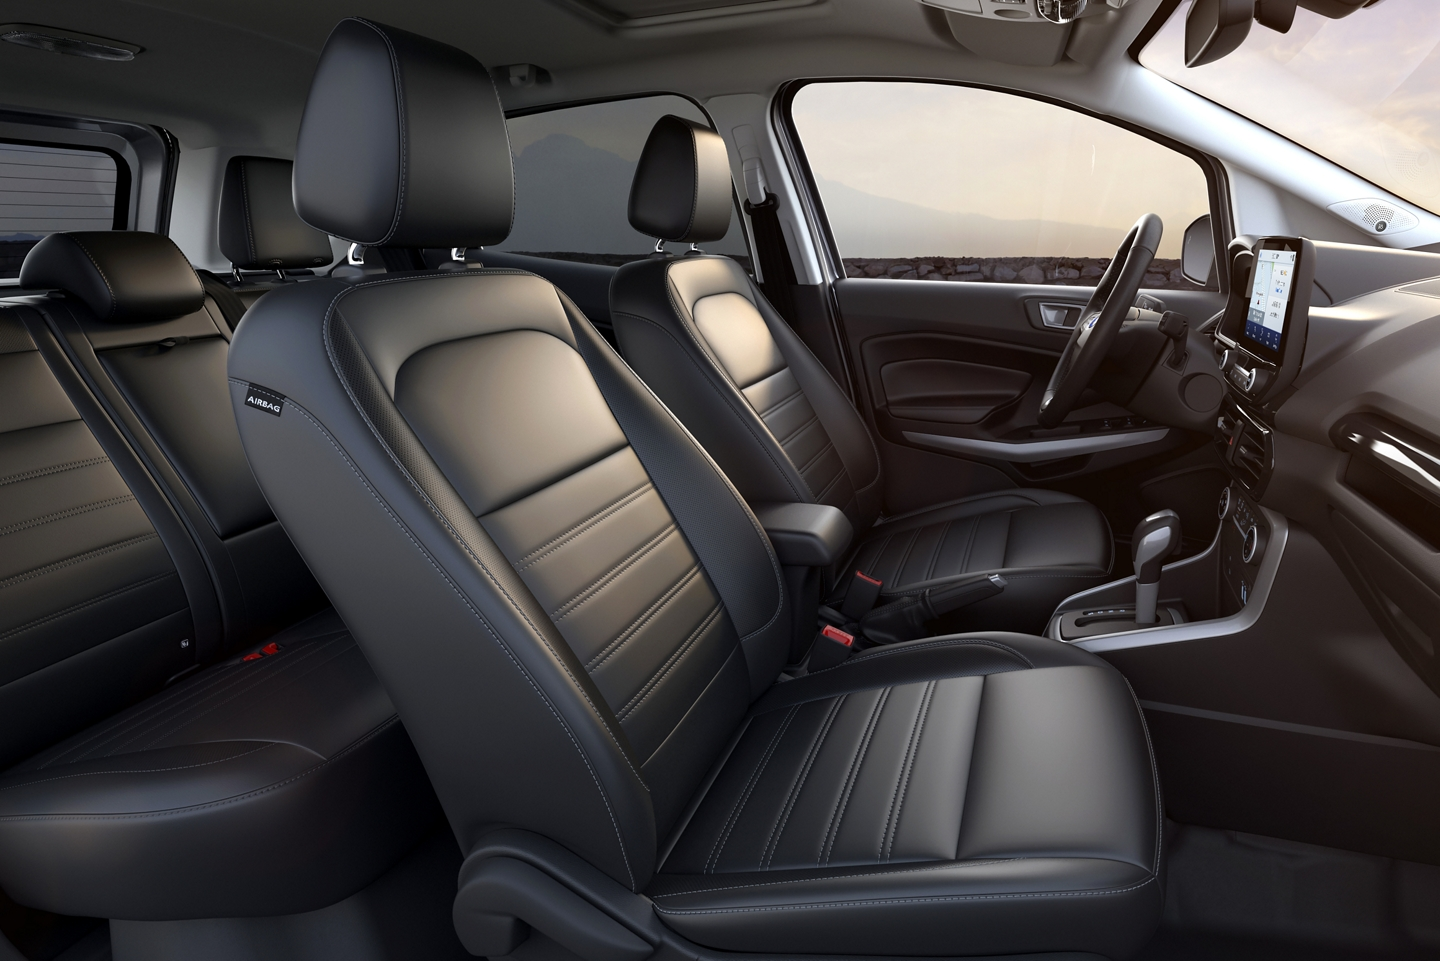 2020 Ford EcoSport Seating